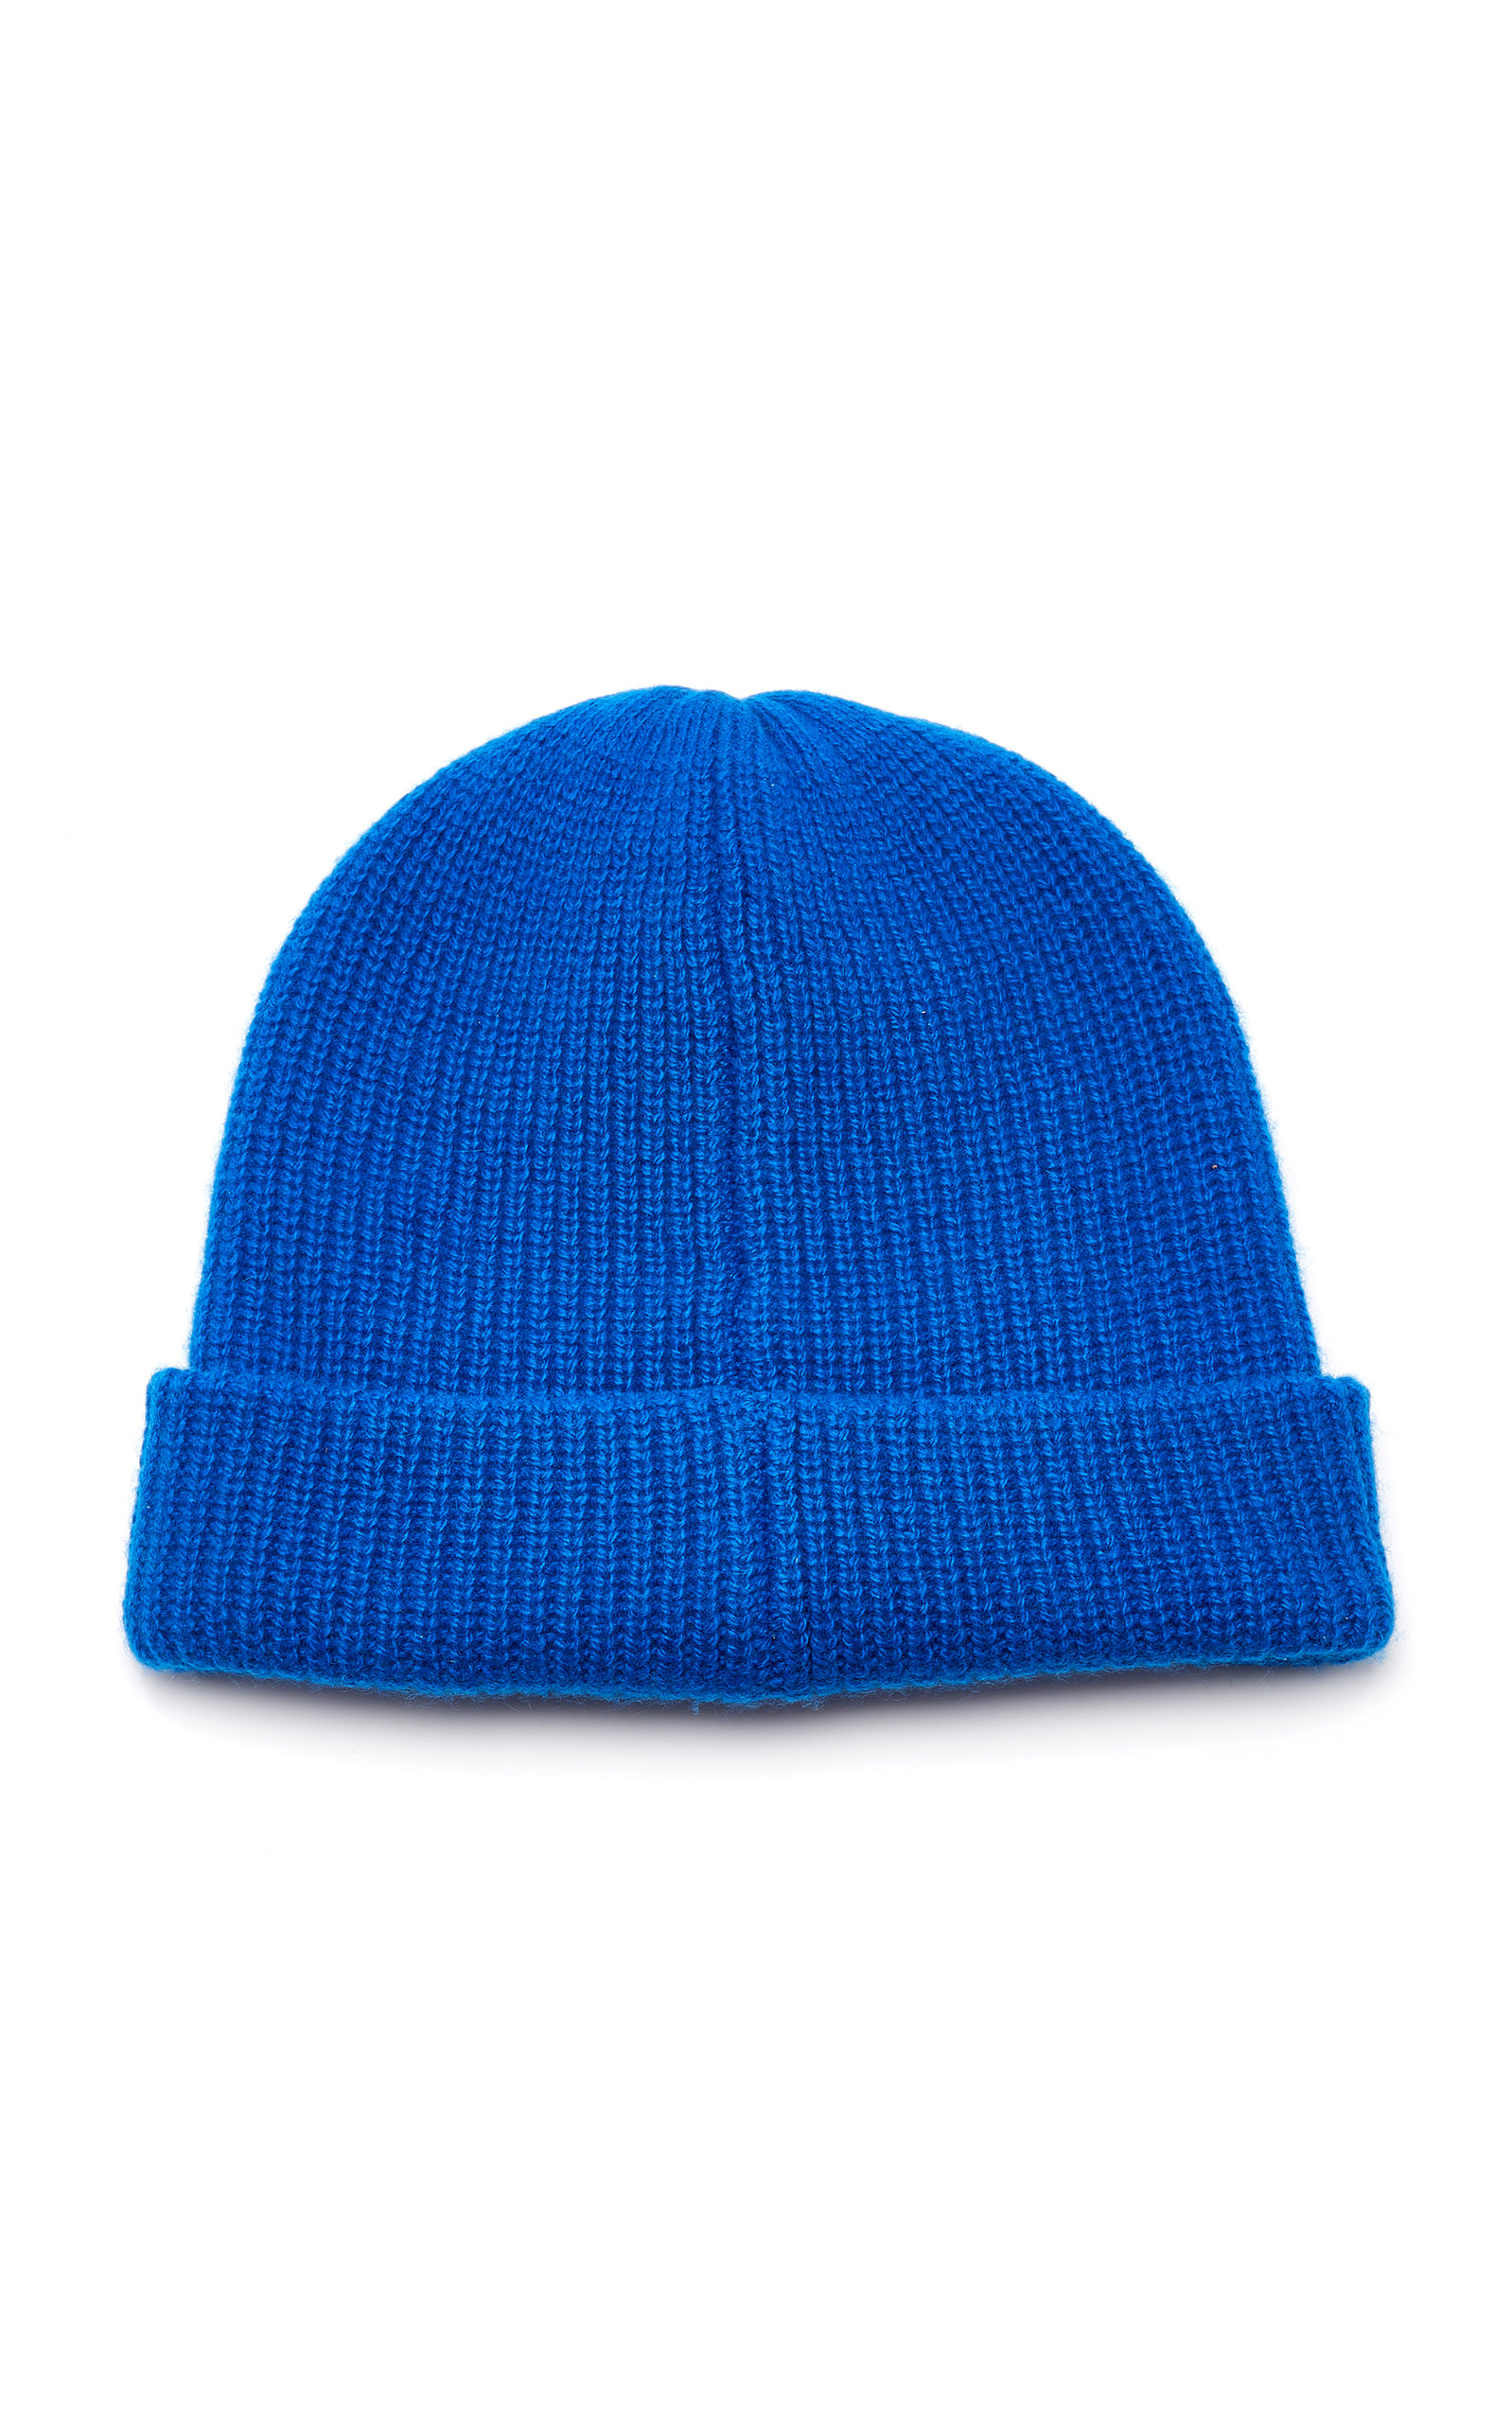 85d88f69b32ee1 The Elder StatesmanWatchman Embroidered Cashmere Hat. CLOSE. Loading.  Loading